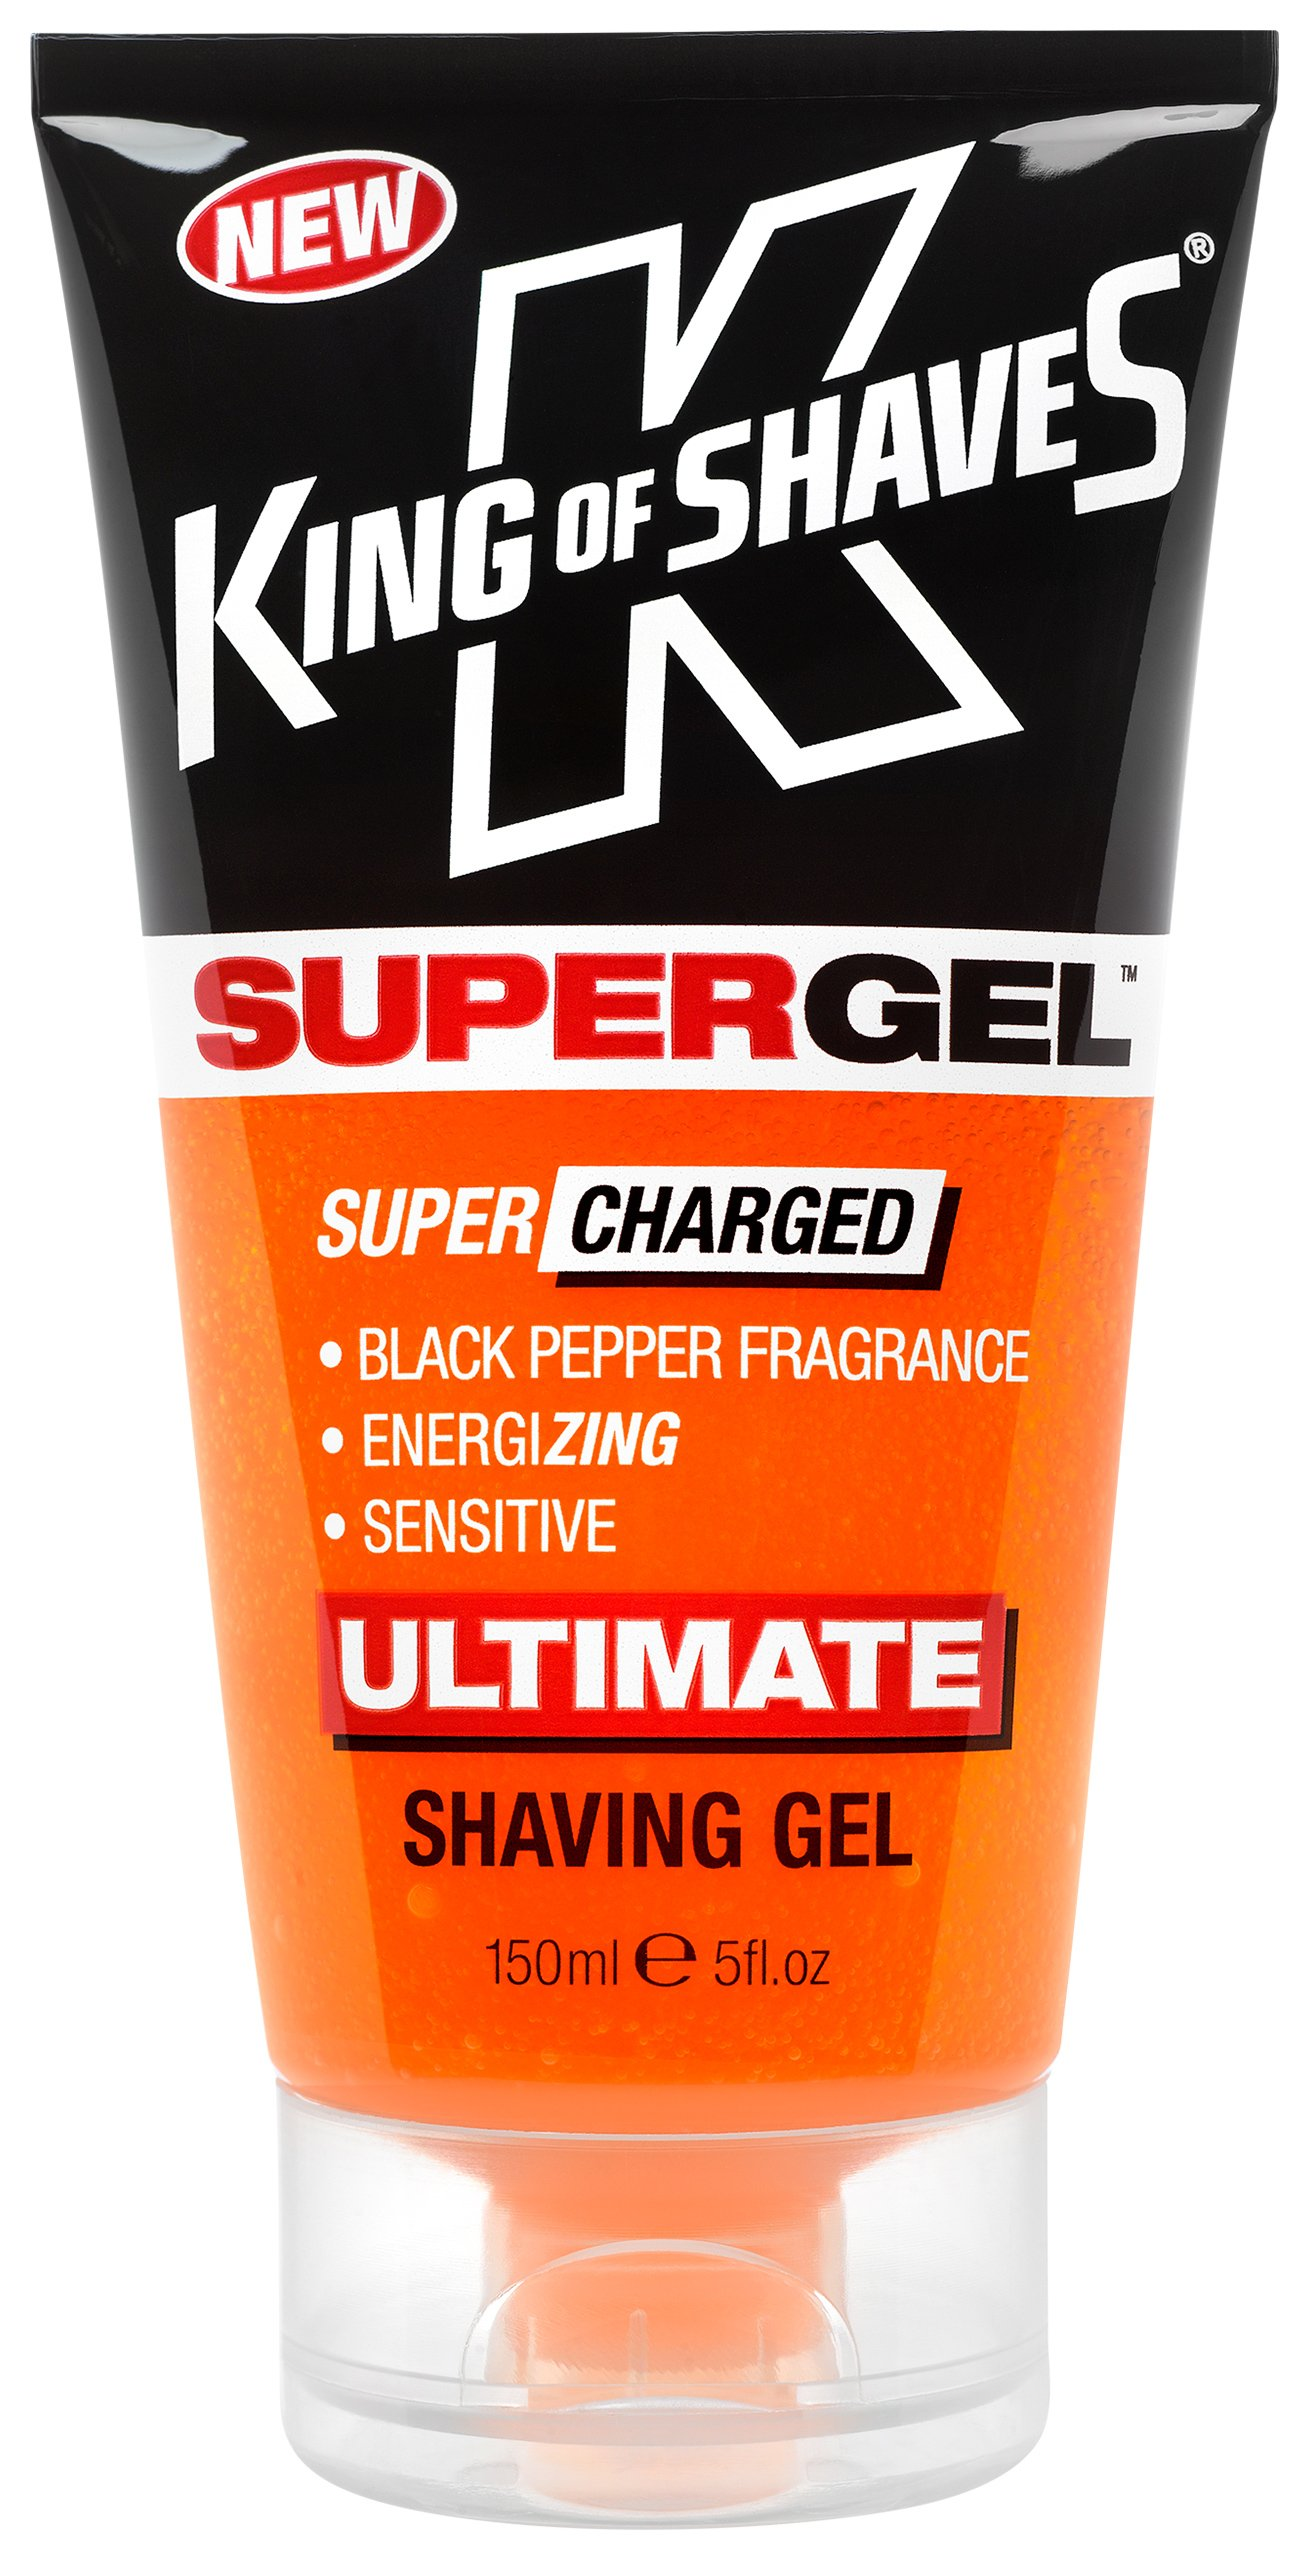 King of Shaves Supergel, Charged, 5 Ounce